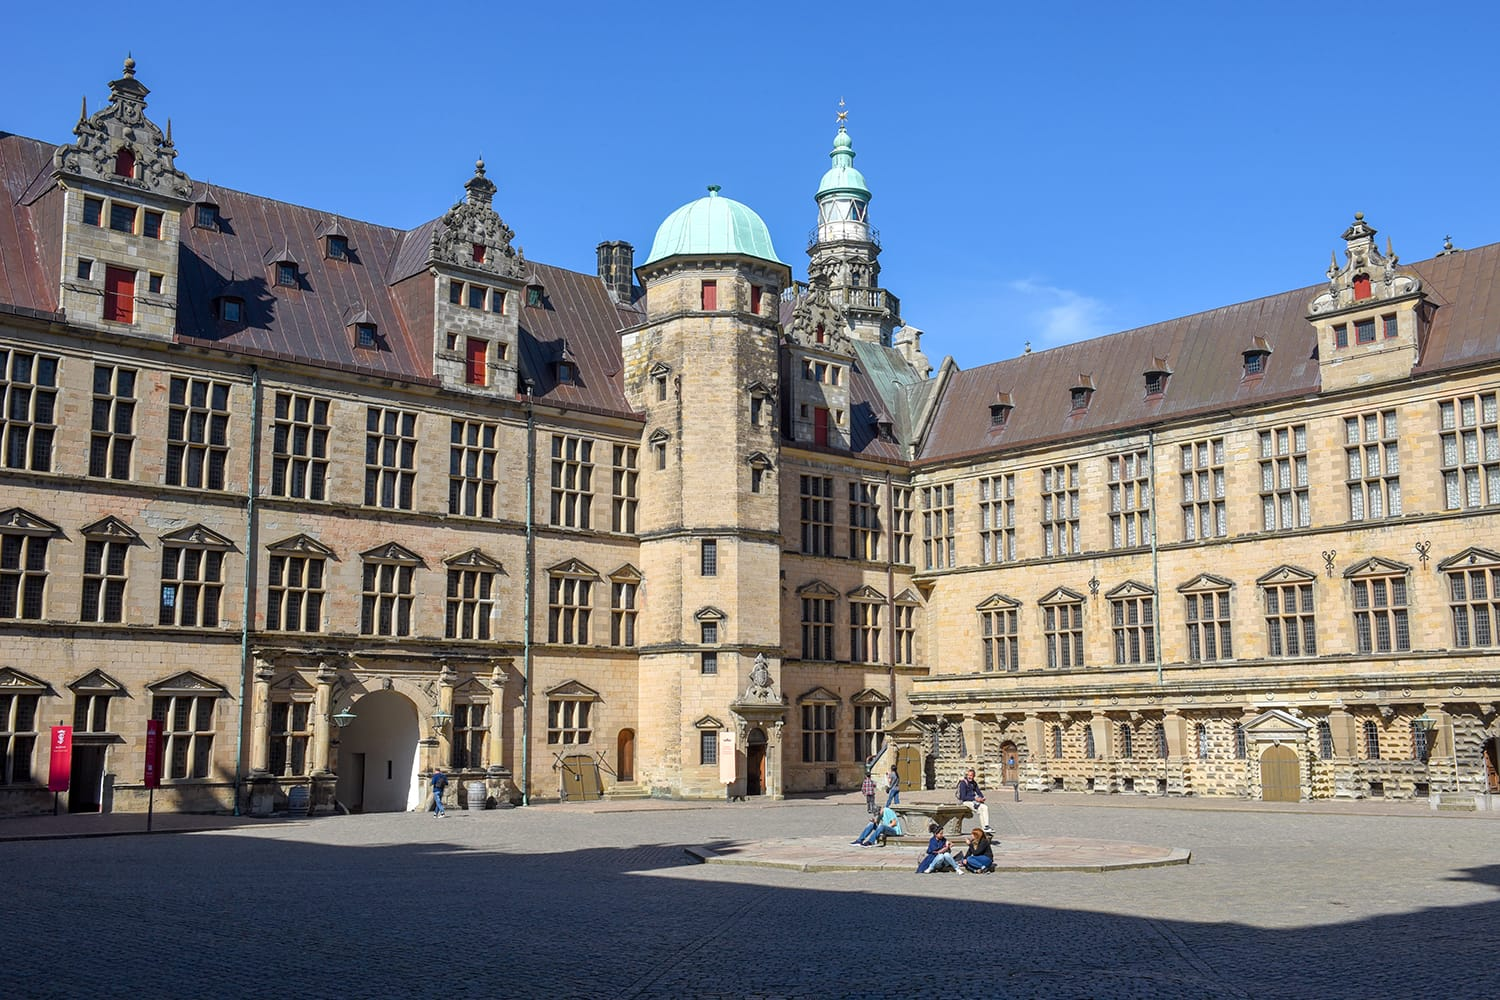 Kronborg castle at Helsingor on Denmark